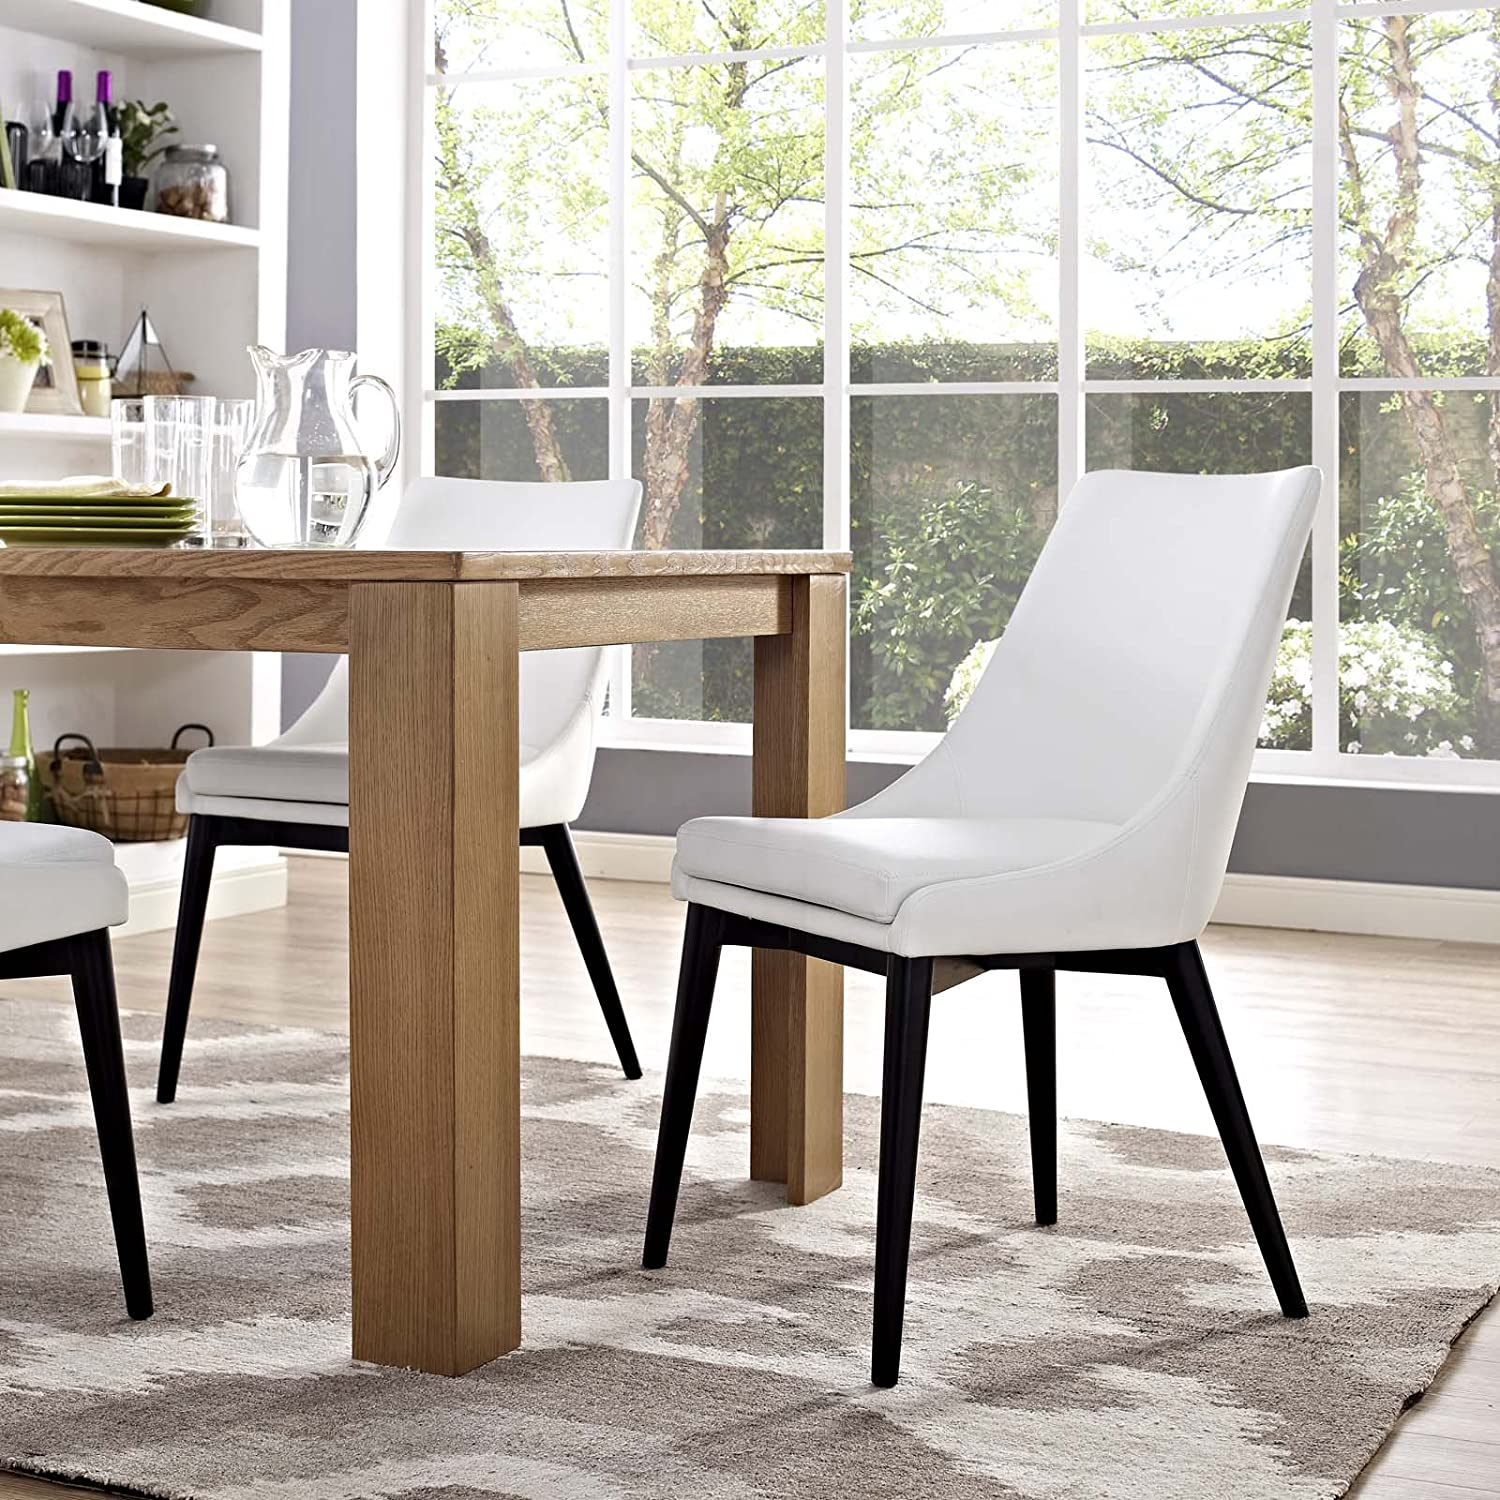 Modway Viscount Mid-Century Modern Faux Leather Upholstered Kitchen and Dining Room Chair in White